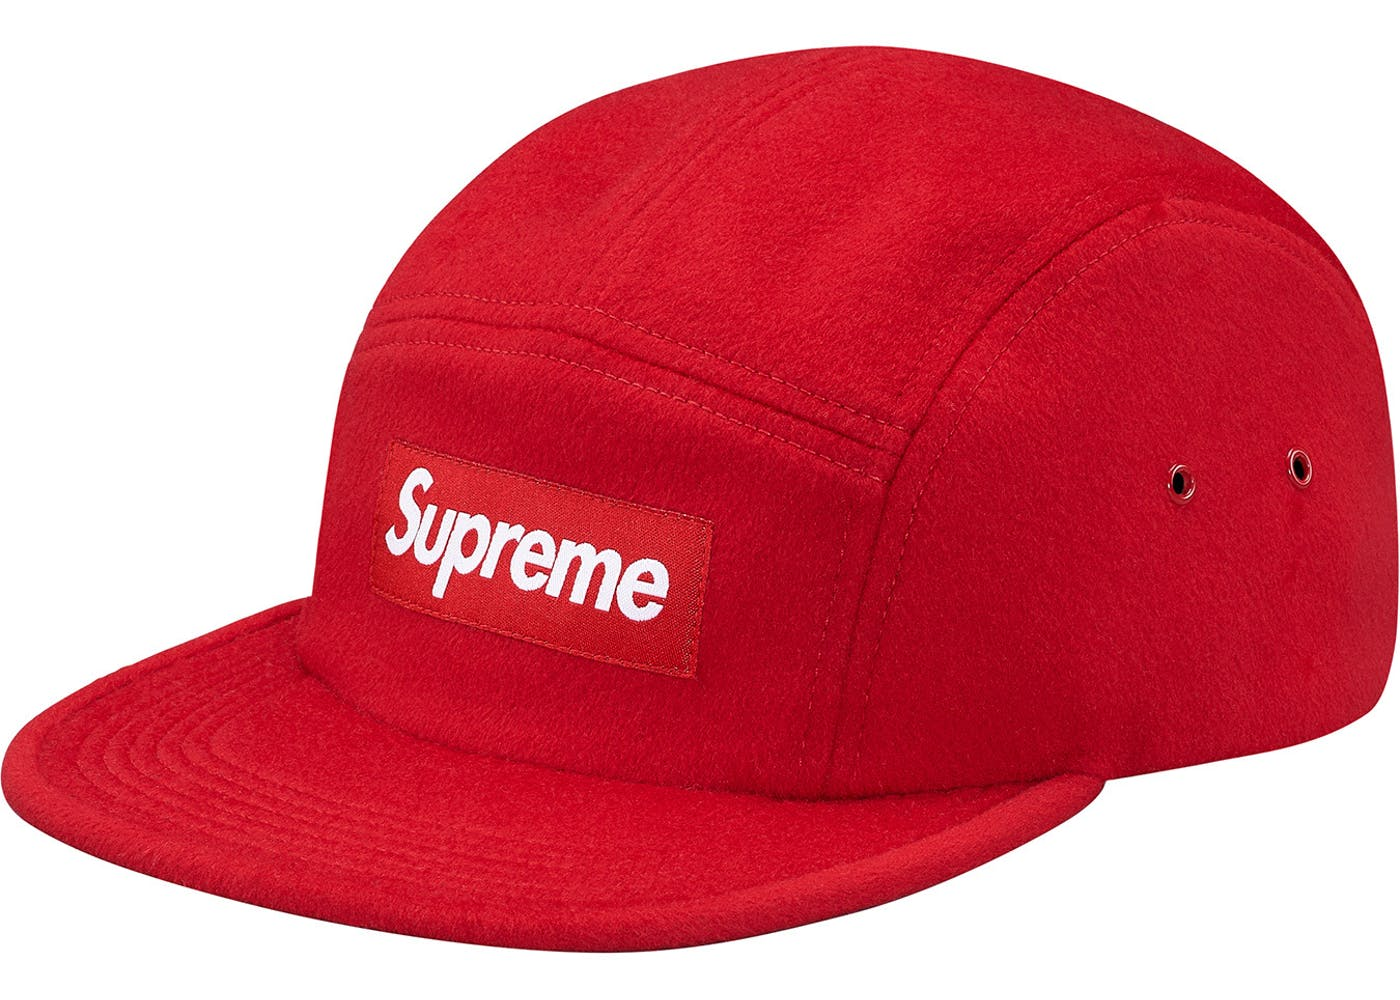 Supreme SUPREME BOX LOGO 5-panel wool camp hat RED Size one size - Supreme  for Sale - Grailed 3d570c2c279